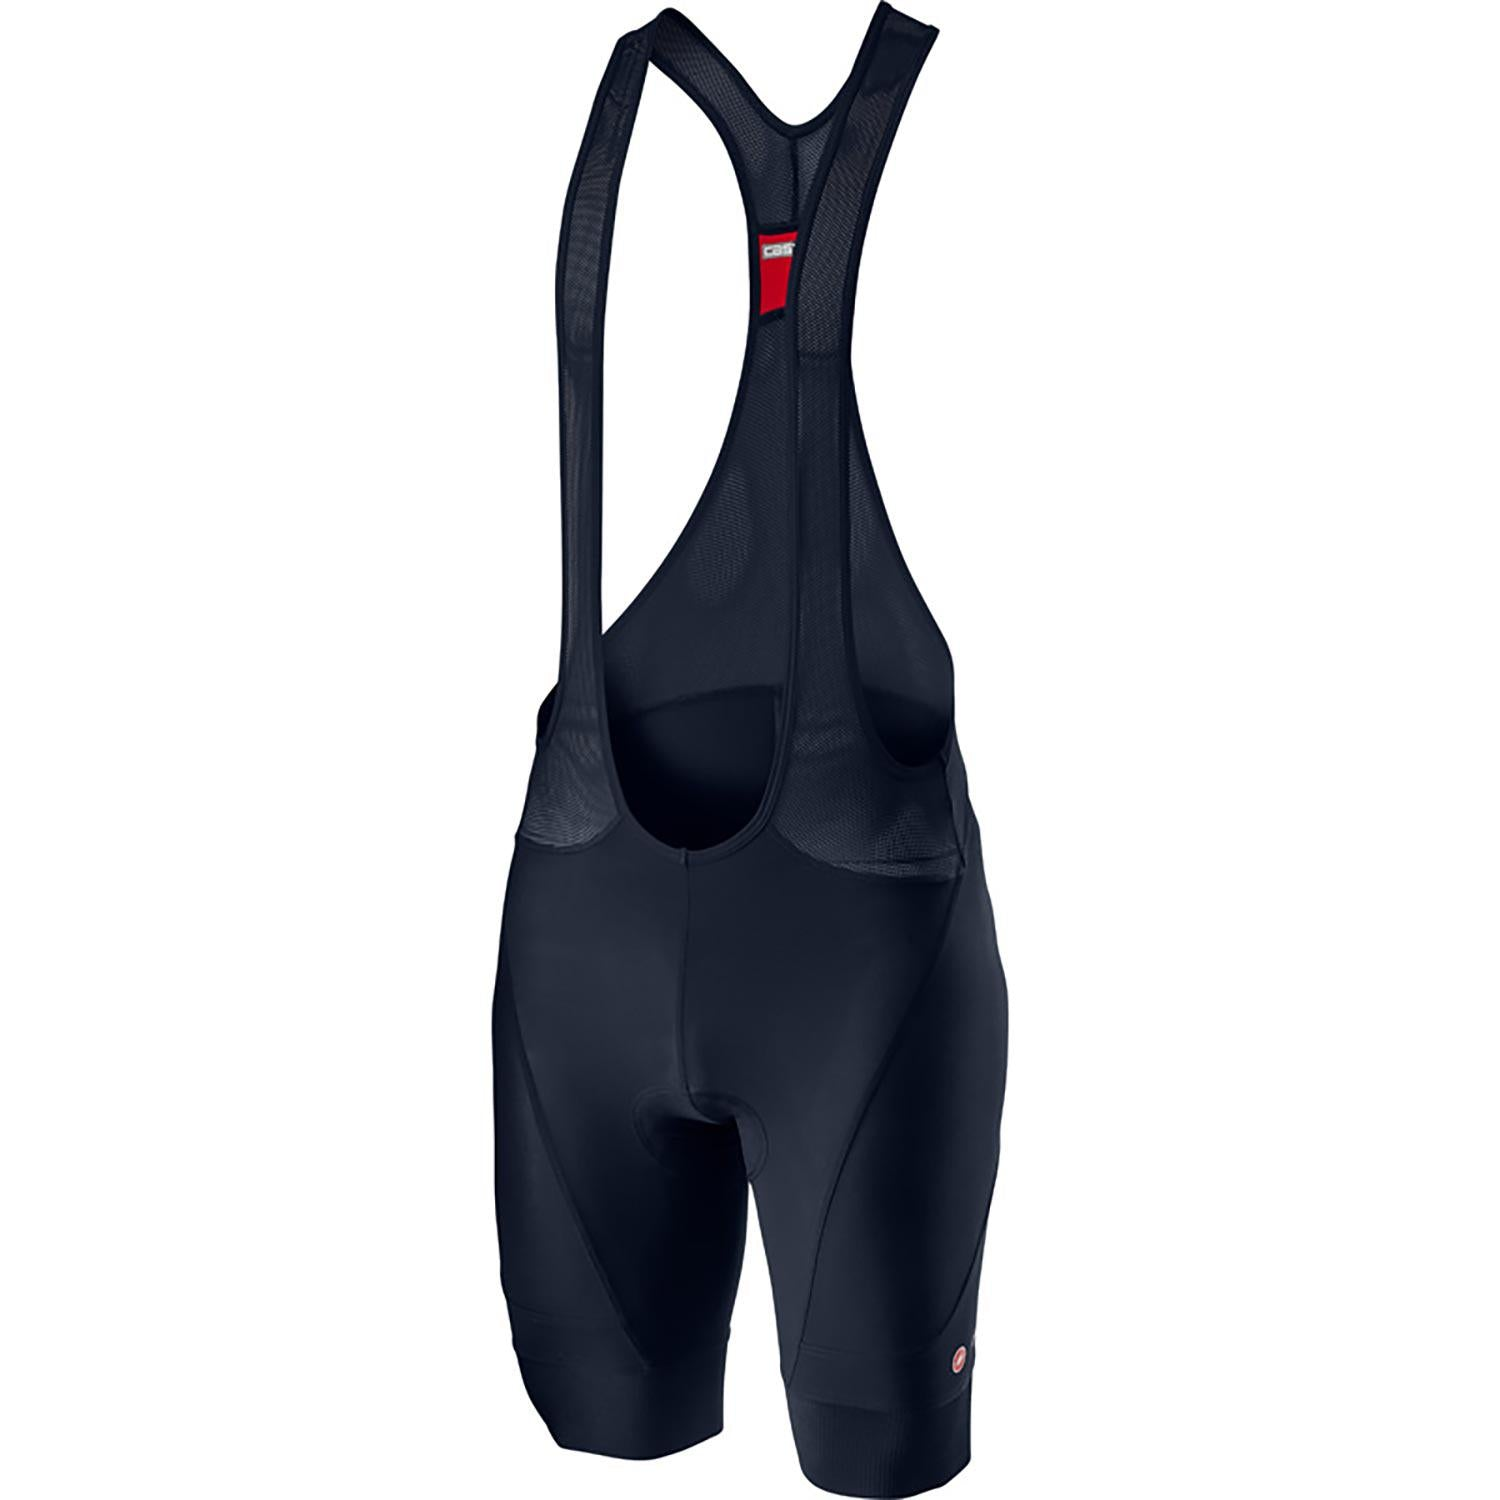 Castelli-Castelli Endurance 3 Bib Shorts-Savile Blue-S-CS210054142-saddleback-elite-performance-cycling